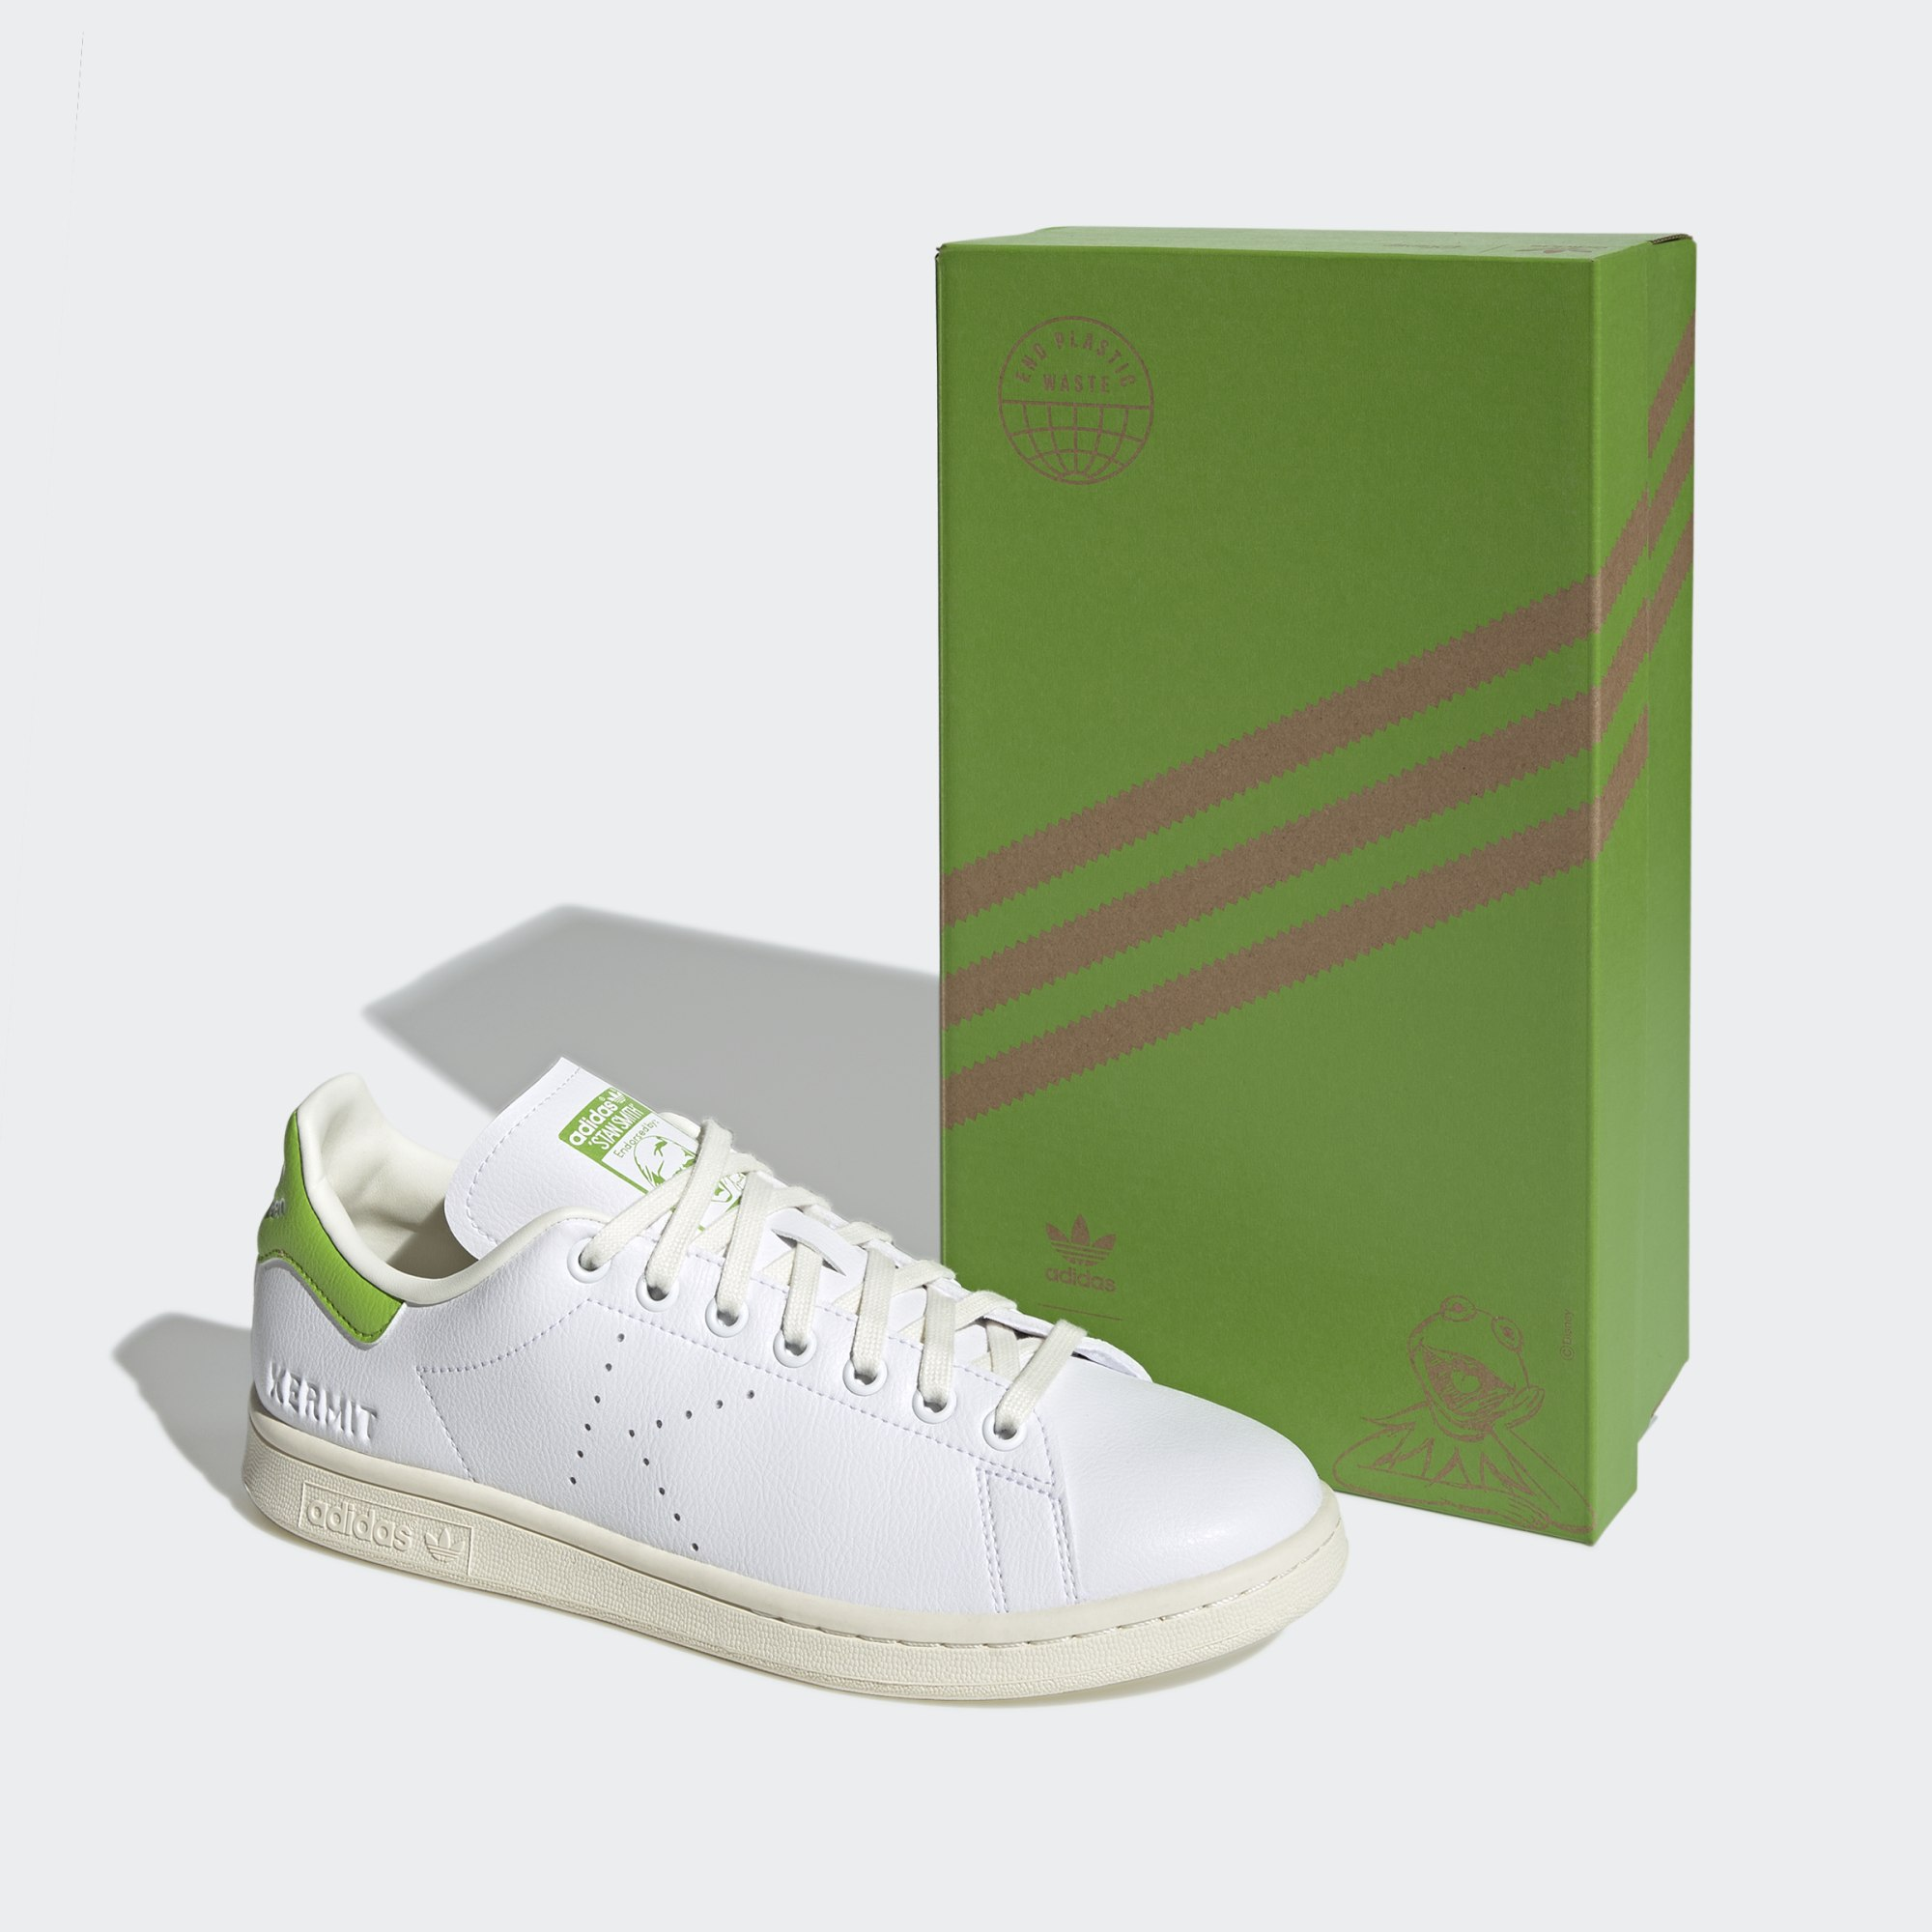 Stan_Smith_Shoes_Vit_FY5460_011_hover_standard.jpg